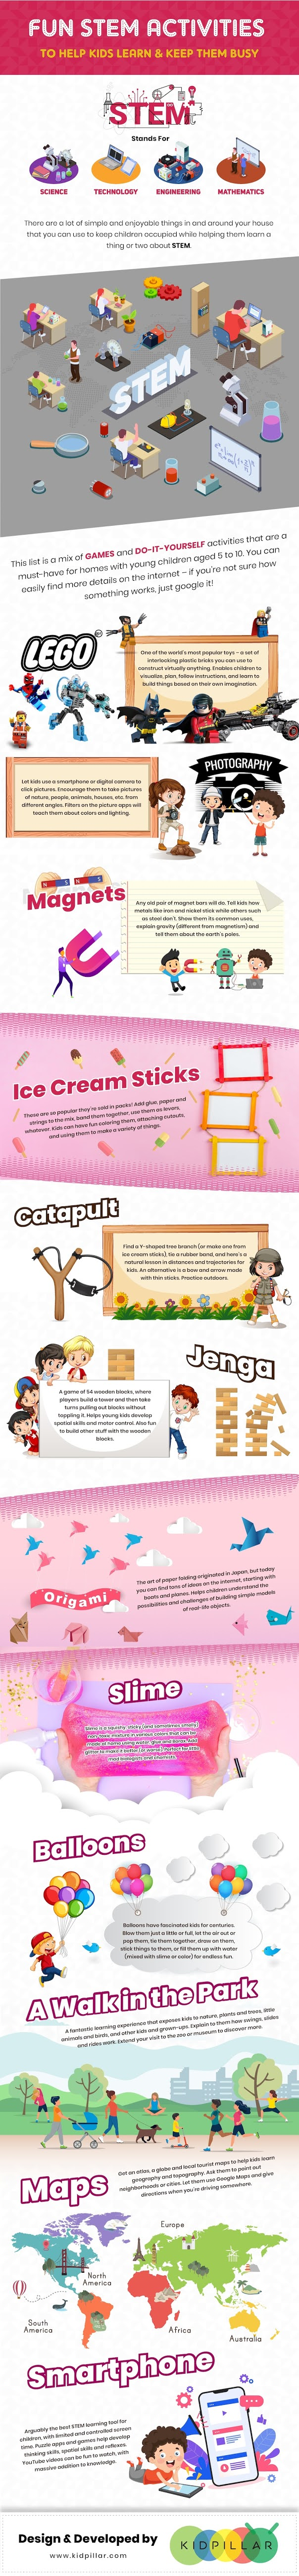 Fun STEM Activities to Keep Children Busy #infographic #Children #infographics #Children Fun #Children Busy #Parenting